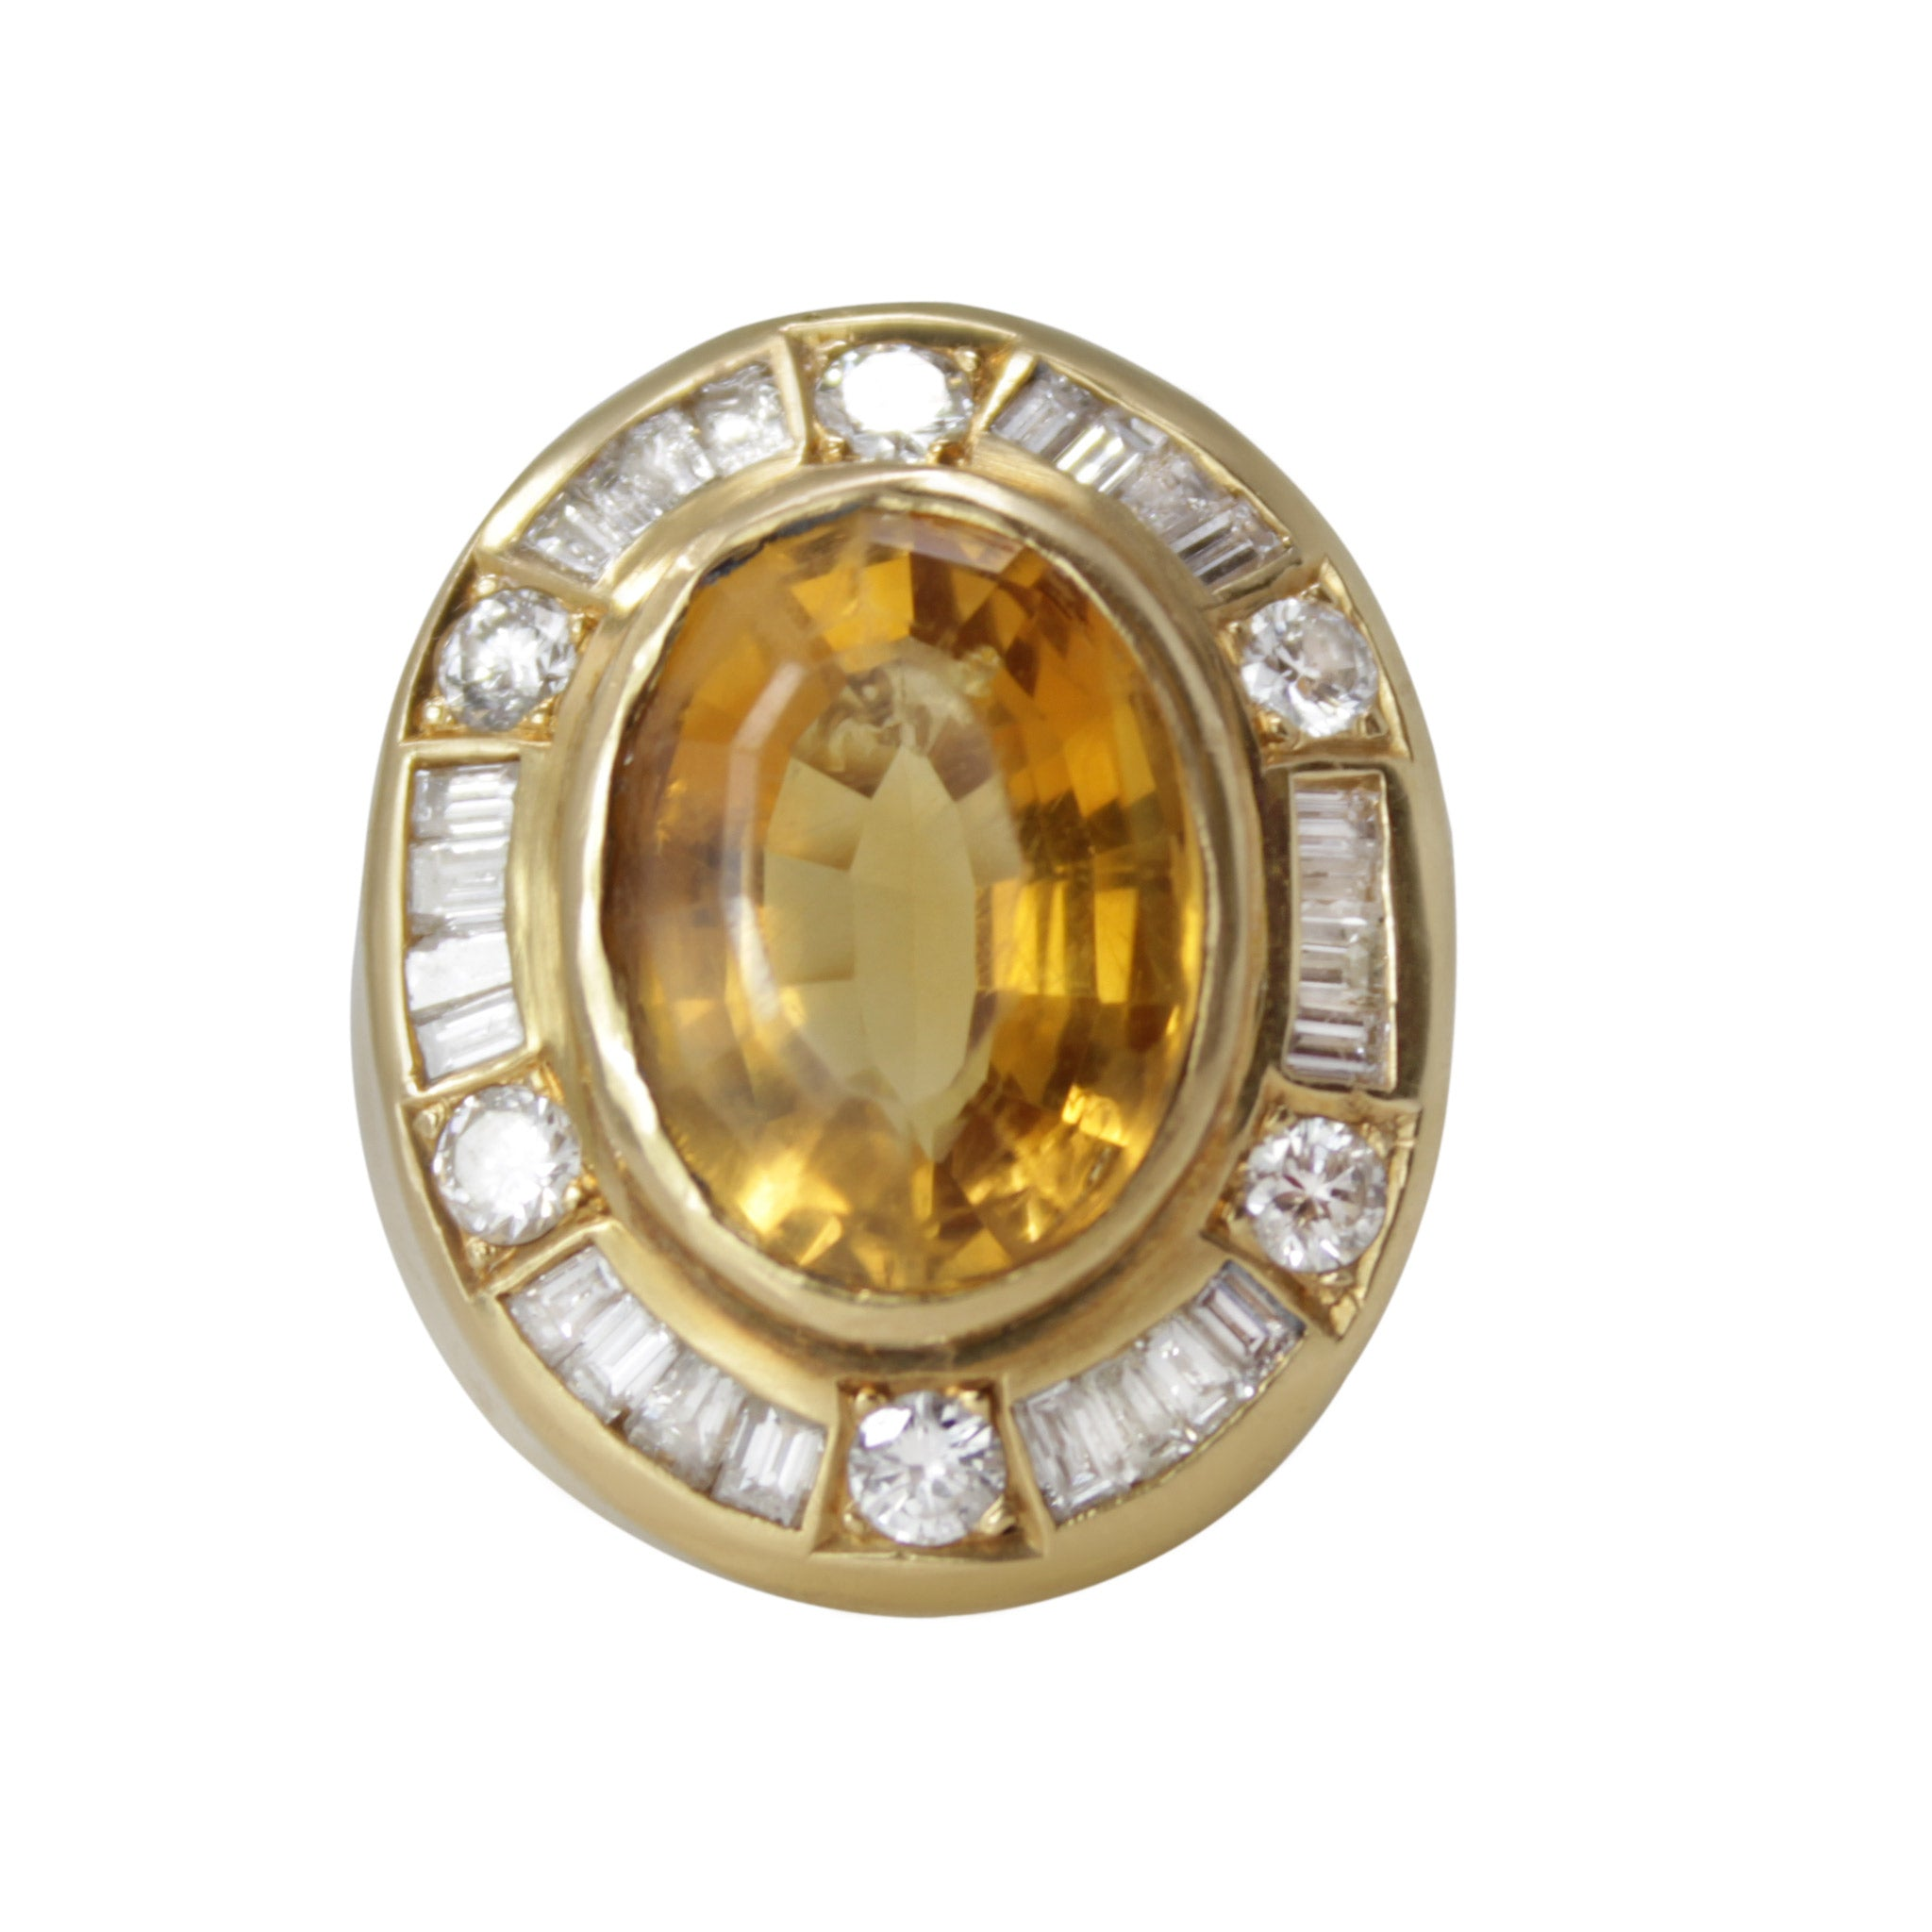 Sun Disk Ring - 18K Yellow Gold Oval Yellow Tourmaline and Diamond Baguette Ring